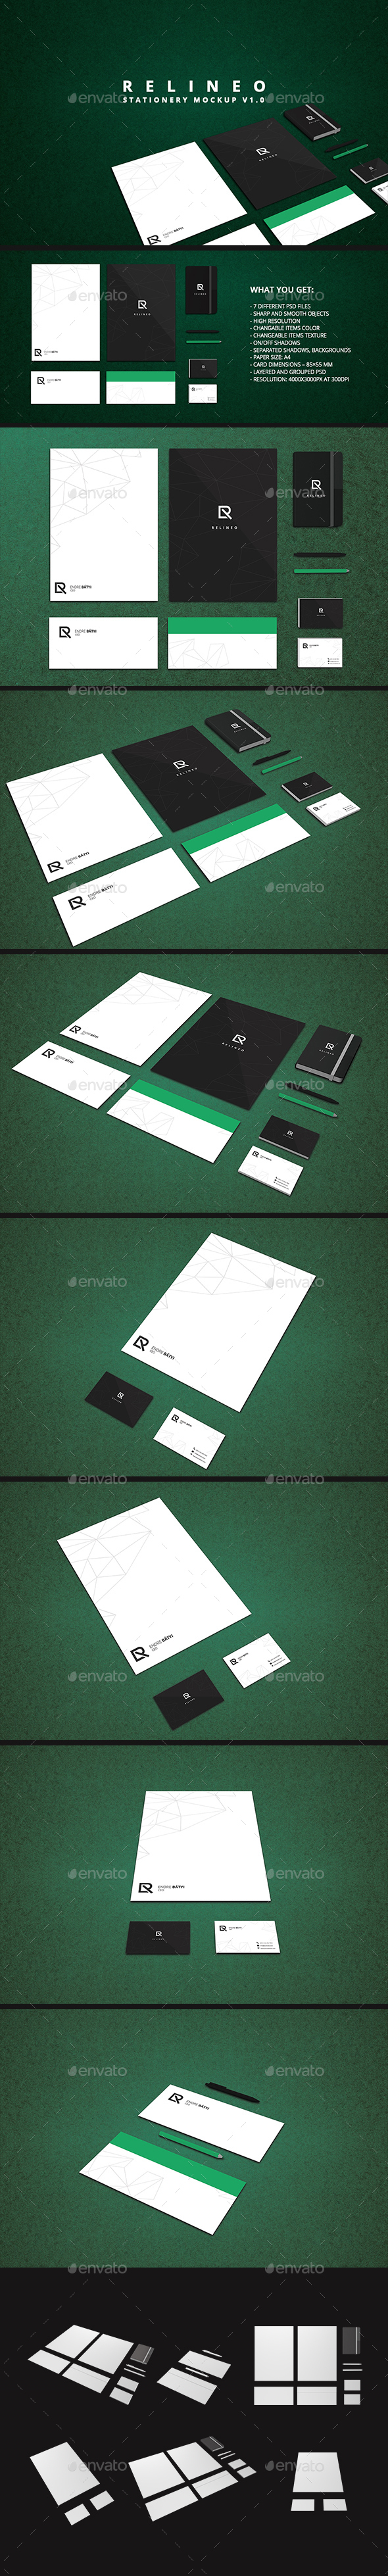 Stationery Mock-up Pack Vol.1 - Stationery Print